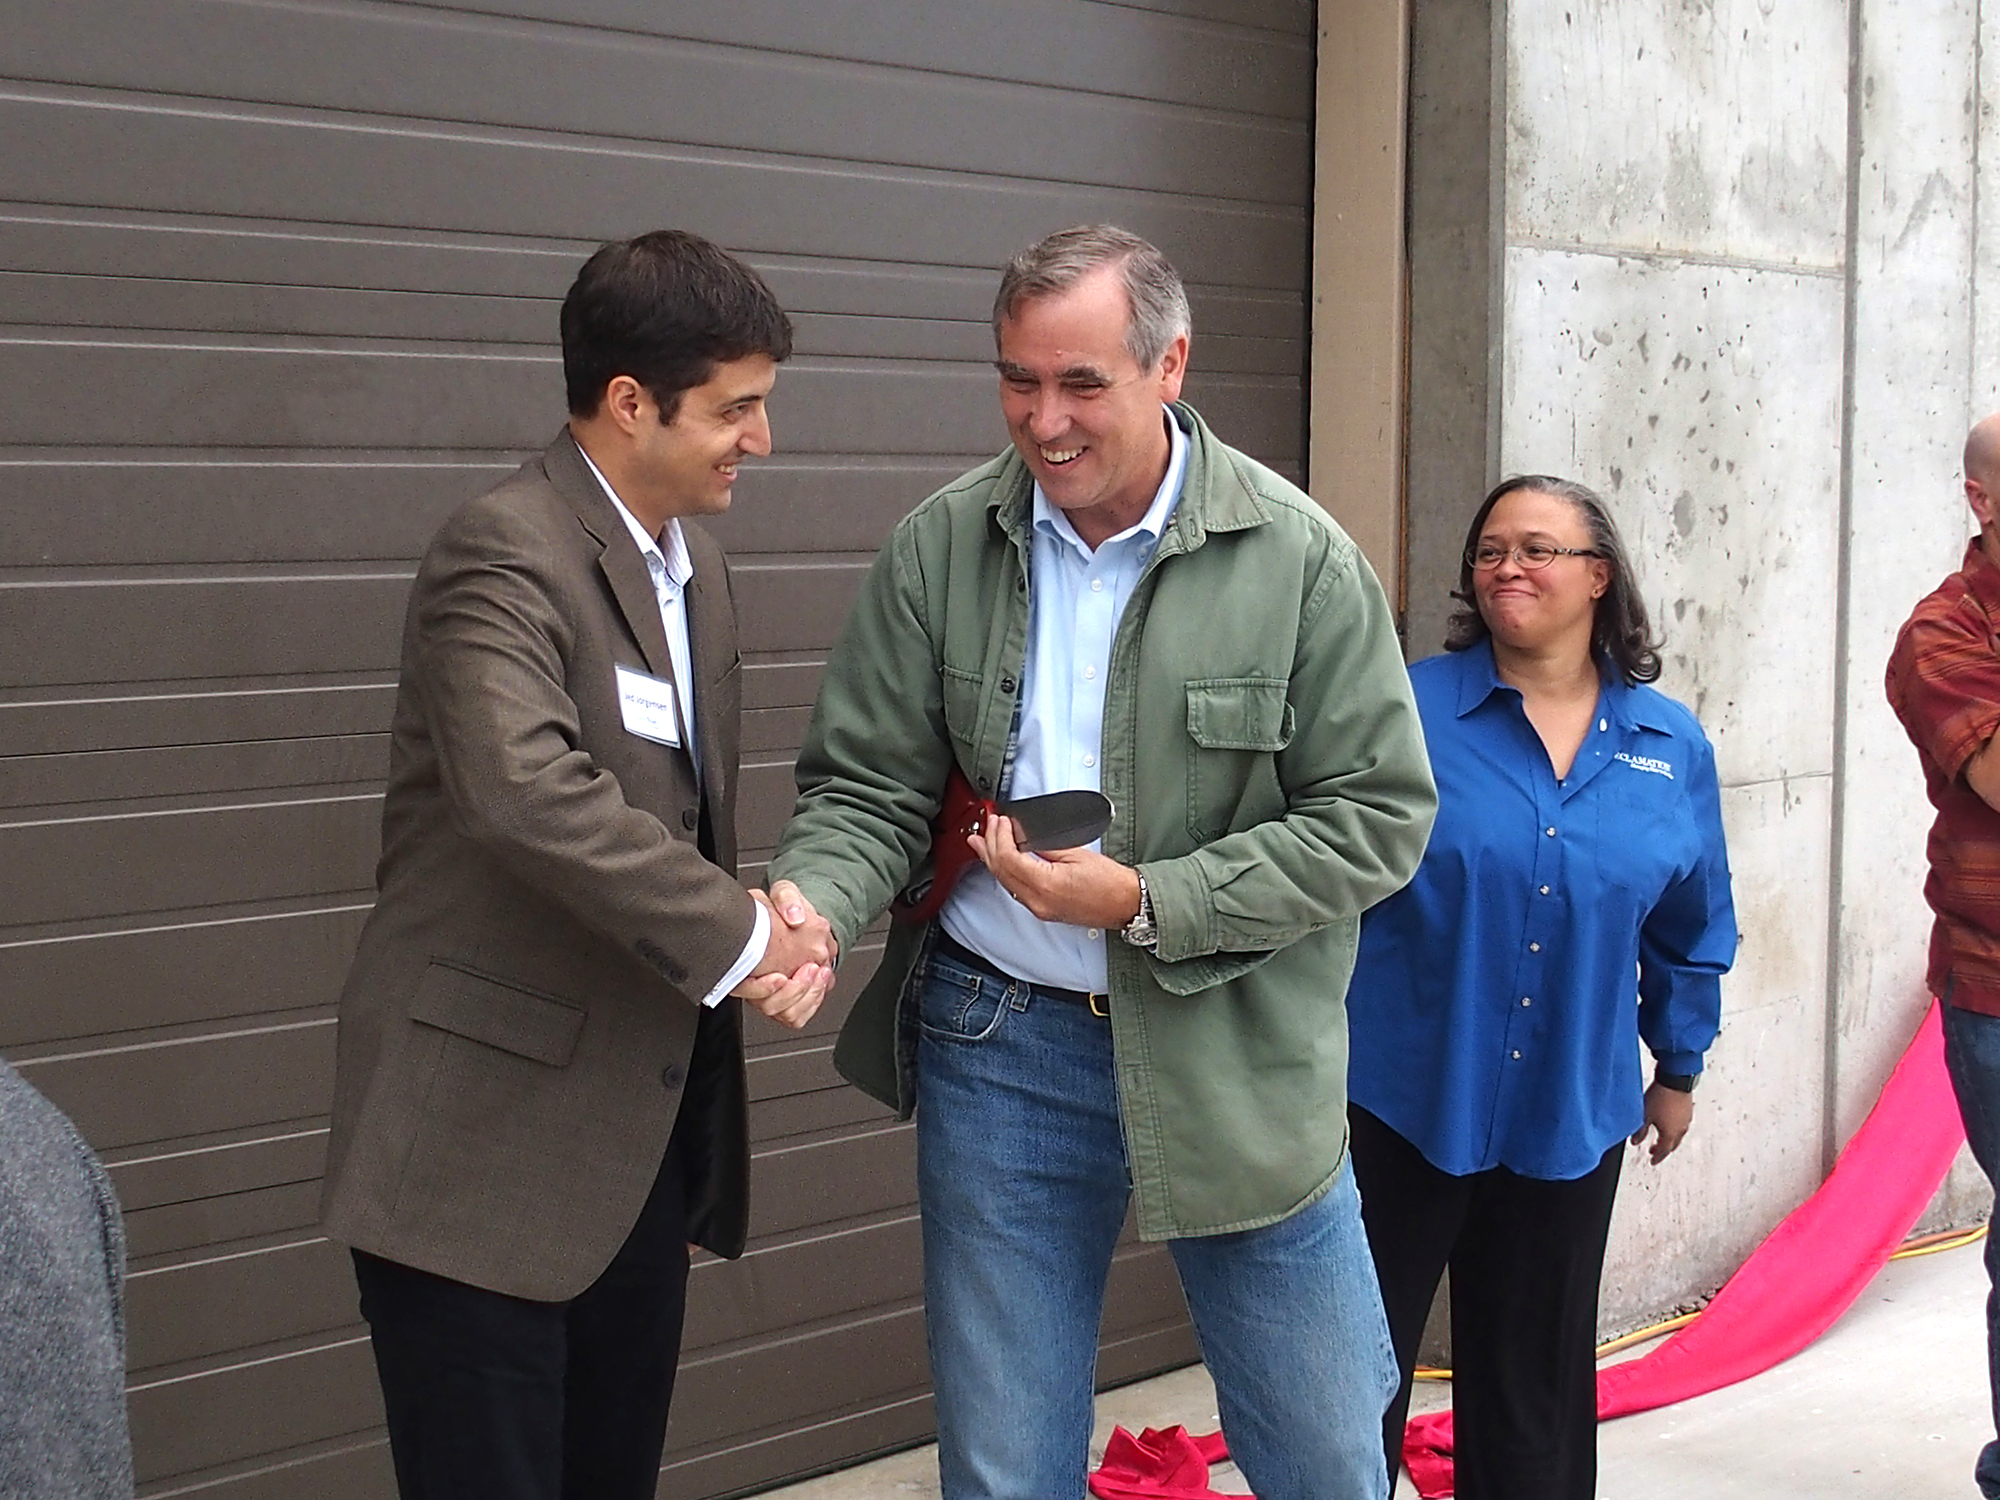 Following the ribbon cutting for Watson Hydropower Facility Jed Jorgensen, with the Energy Trust of Oregon congratulates U.S. Sen. Jeff Merkley while Deputy Commissioner Dionne Thompson looks on. Photo Credit: Energy Trust of Oregon